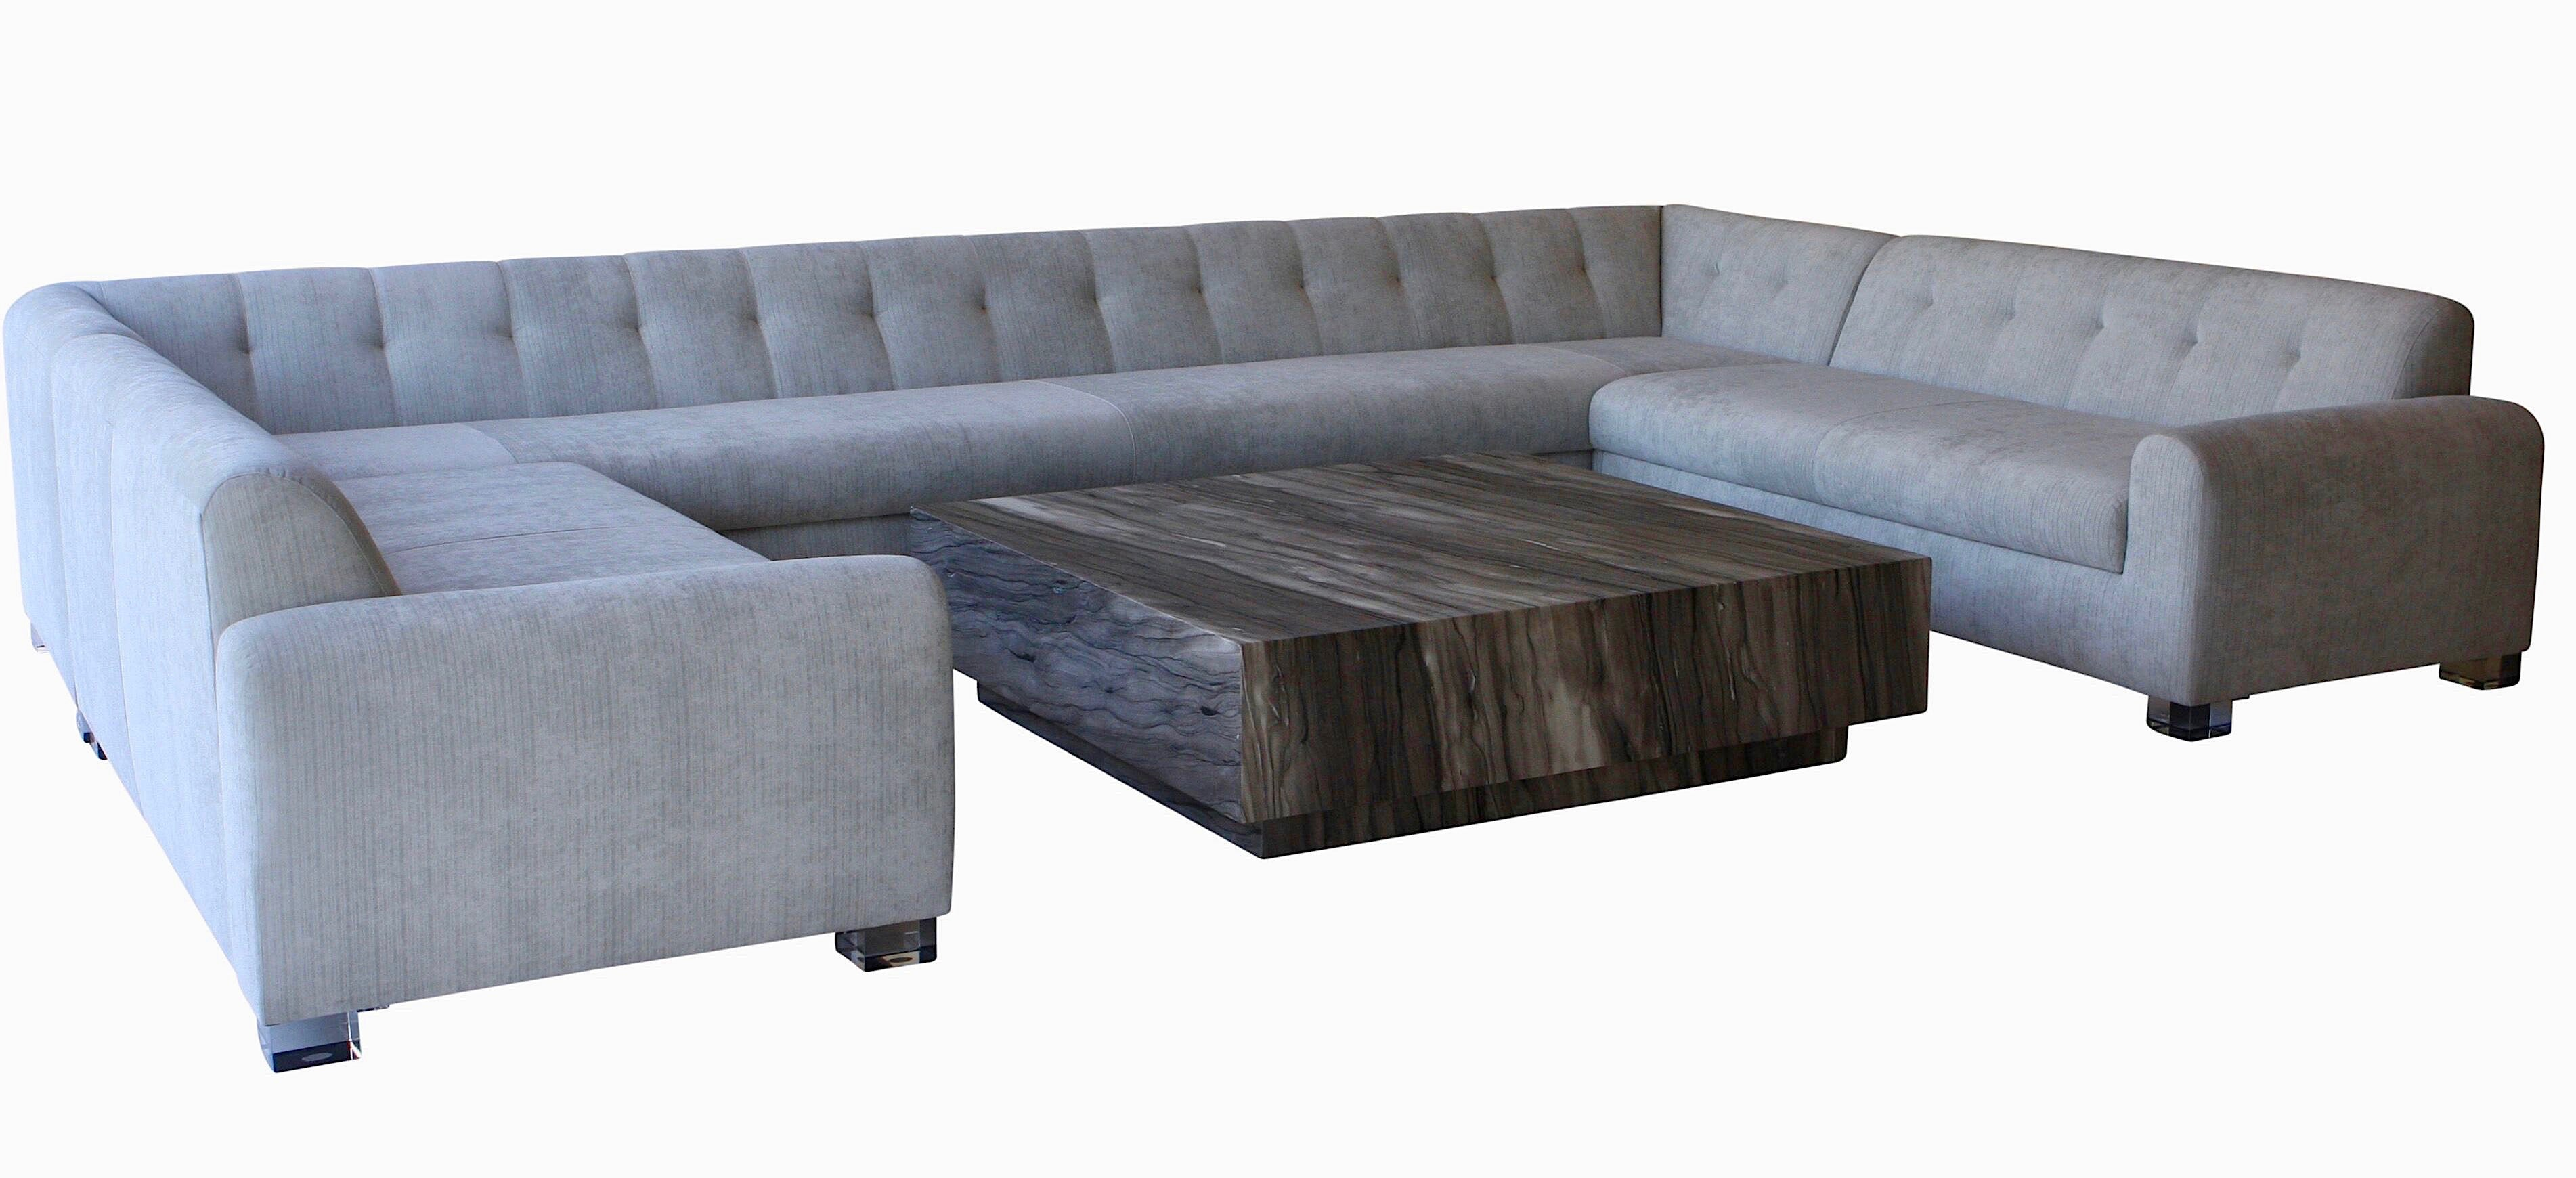 Incredible Outdoor Large U Shaped Sectional With Lucite Legs Mortise Pdpeps Interior Chair Design Pdpepsorg